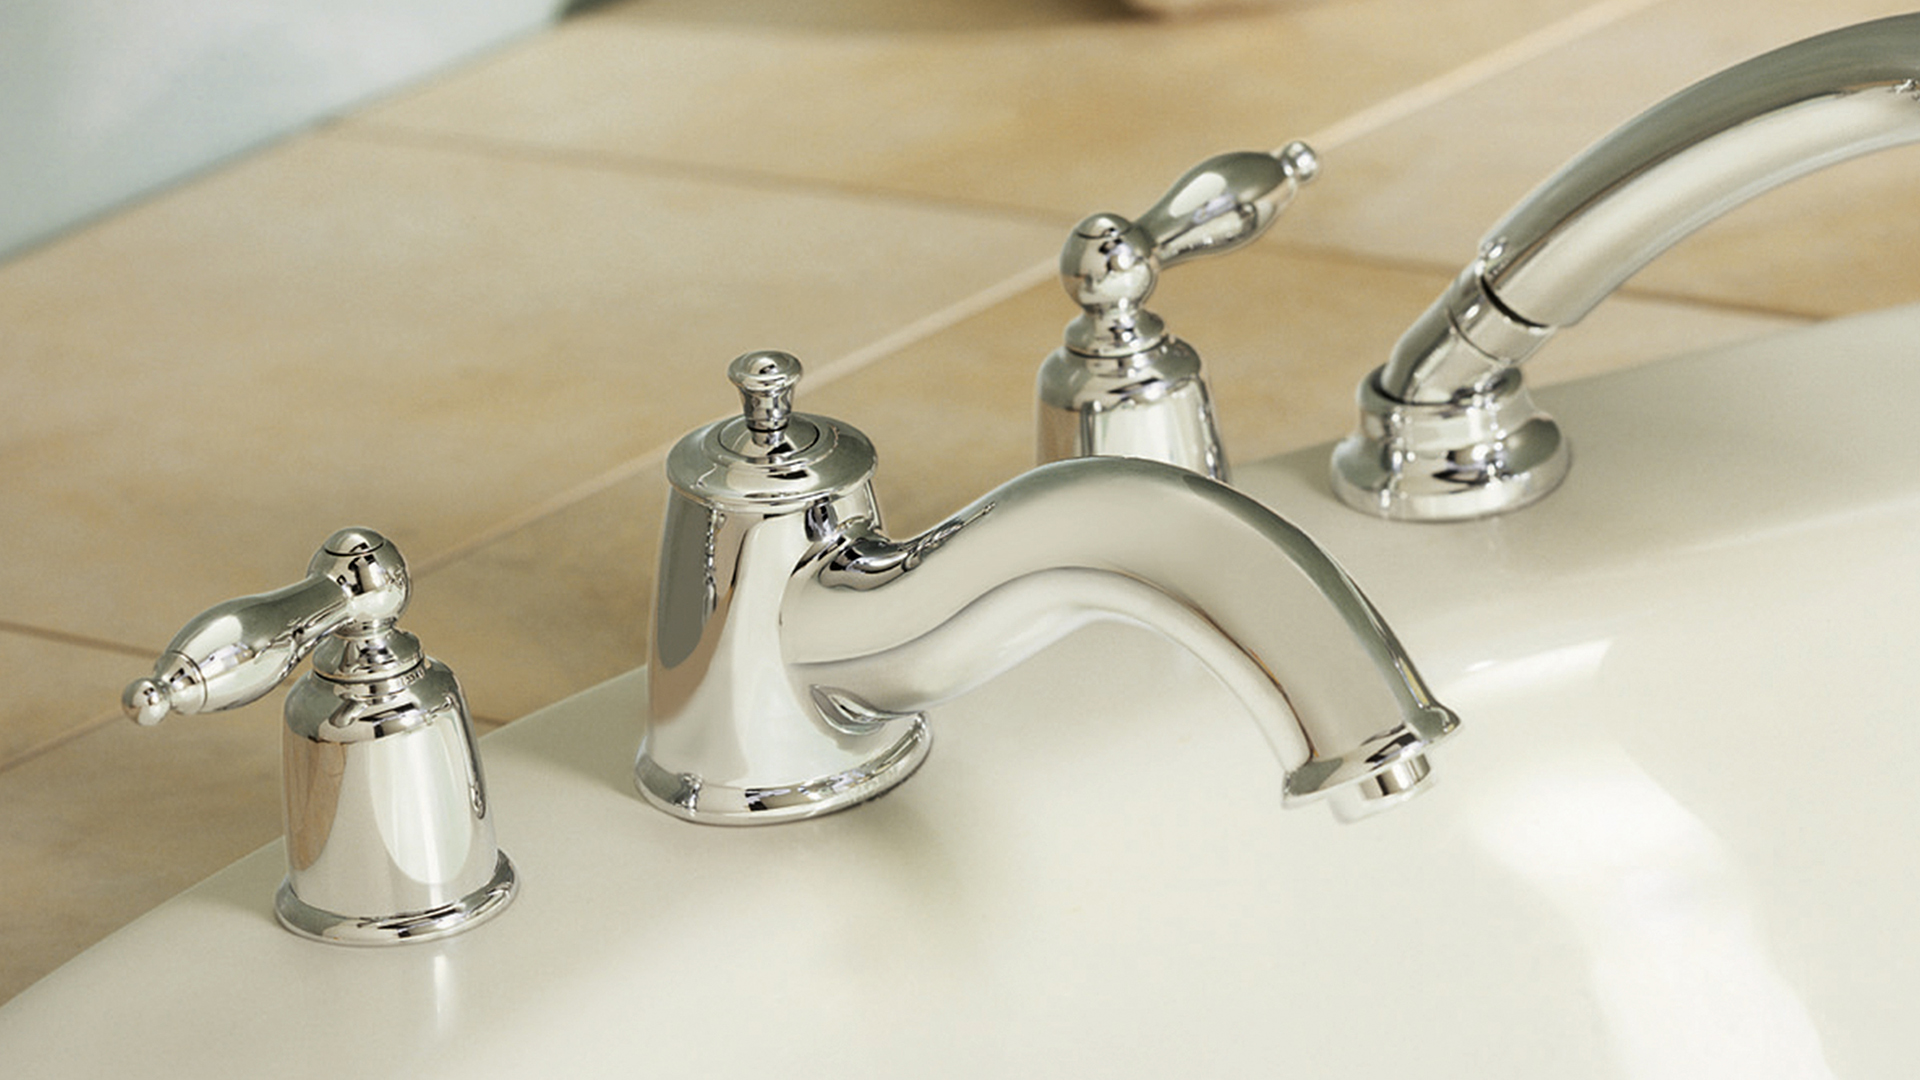 priority_designs_faucet_and_sink_design_and_development_002